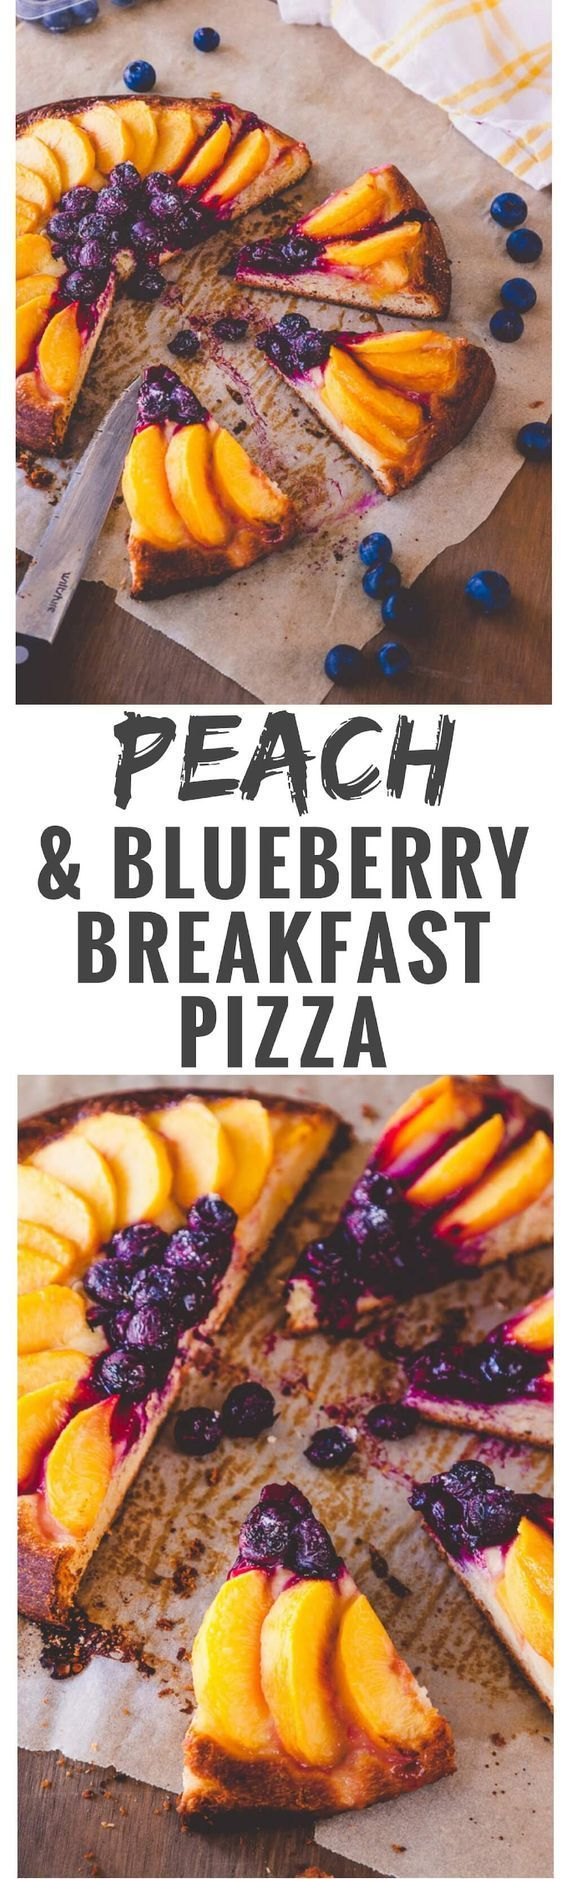 and Blueberry Brioche Tart Looking for a decadent weekend breakfast treat? Then this peach and blueberry breakfast pizza recipe might just fit the bill.Looking for a decadent weekend breakfast treat? Then this peach and blueberry breakfast pizza recipe might just fit the bill.